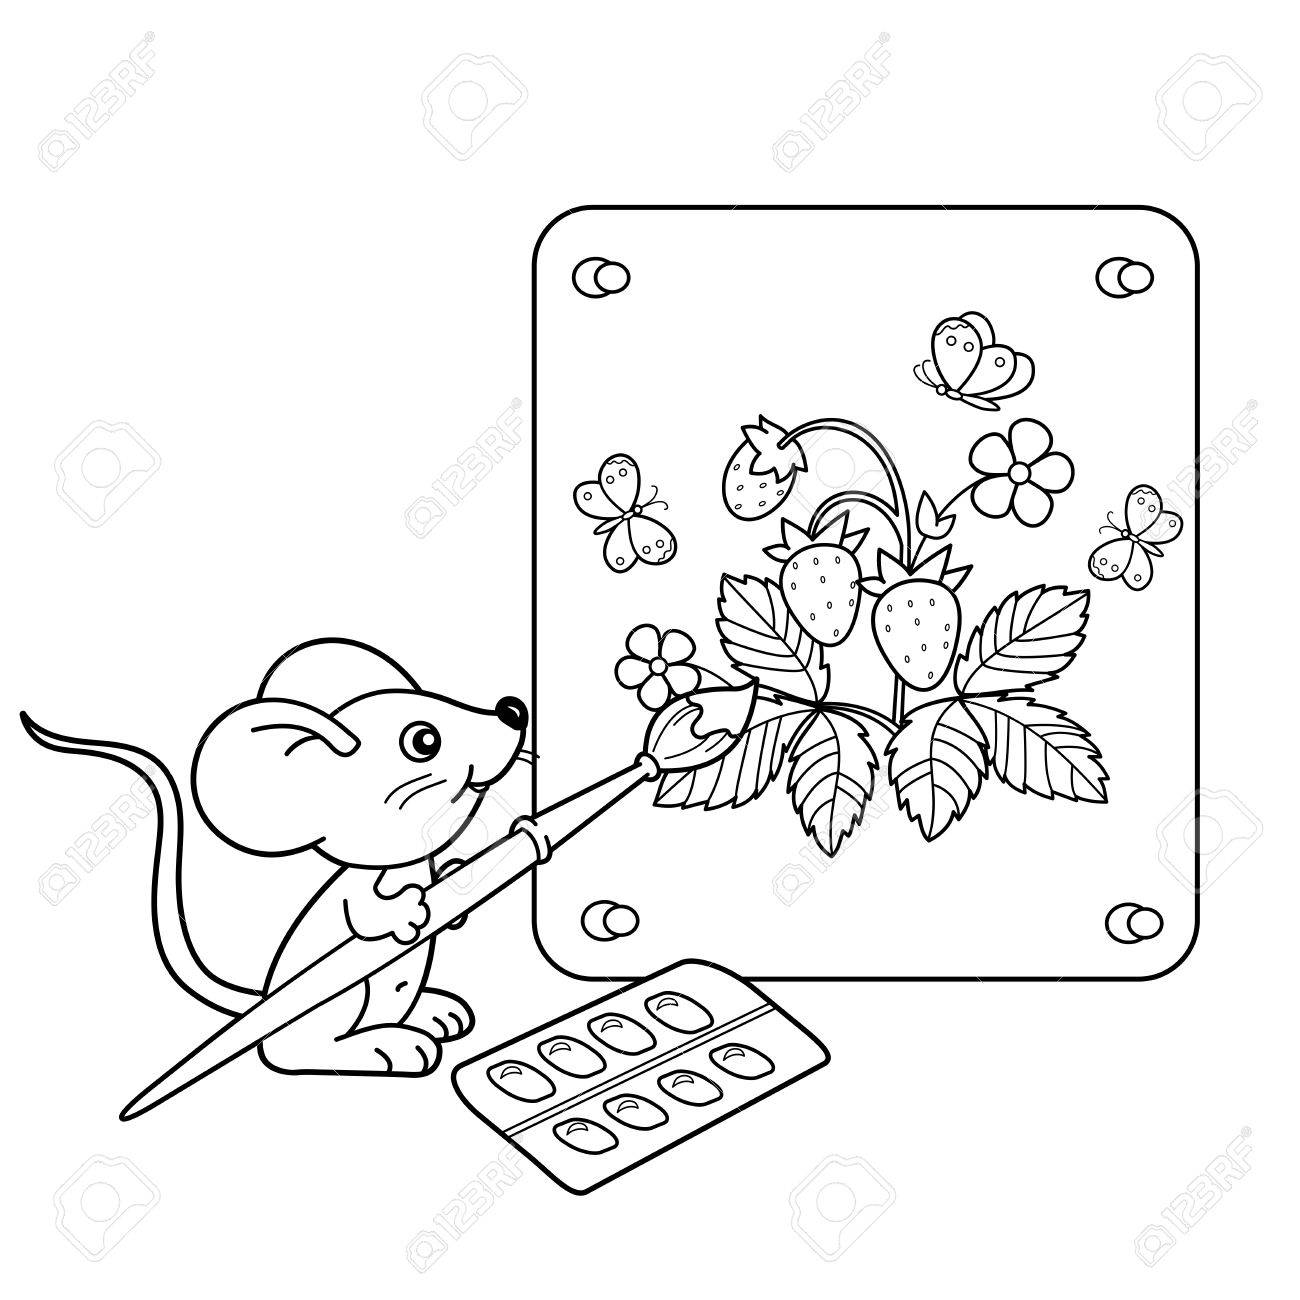 1300x1300 Coloring Page Outline Cartoon Little Mouse With Picture